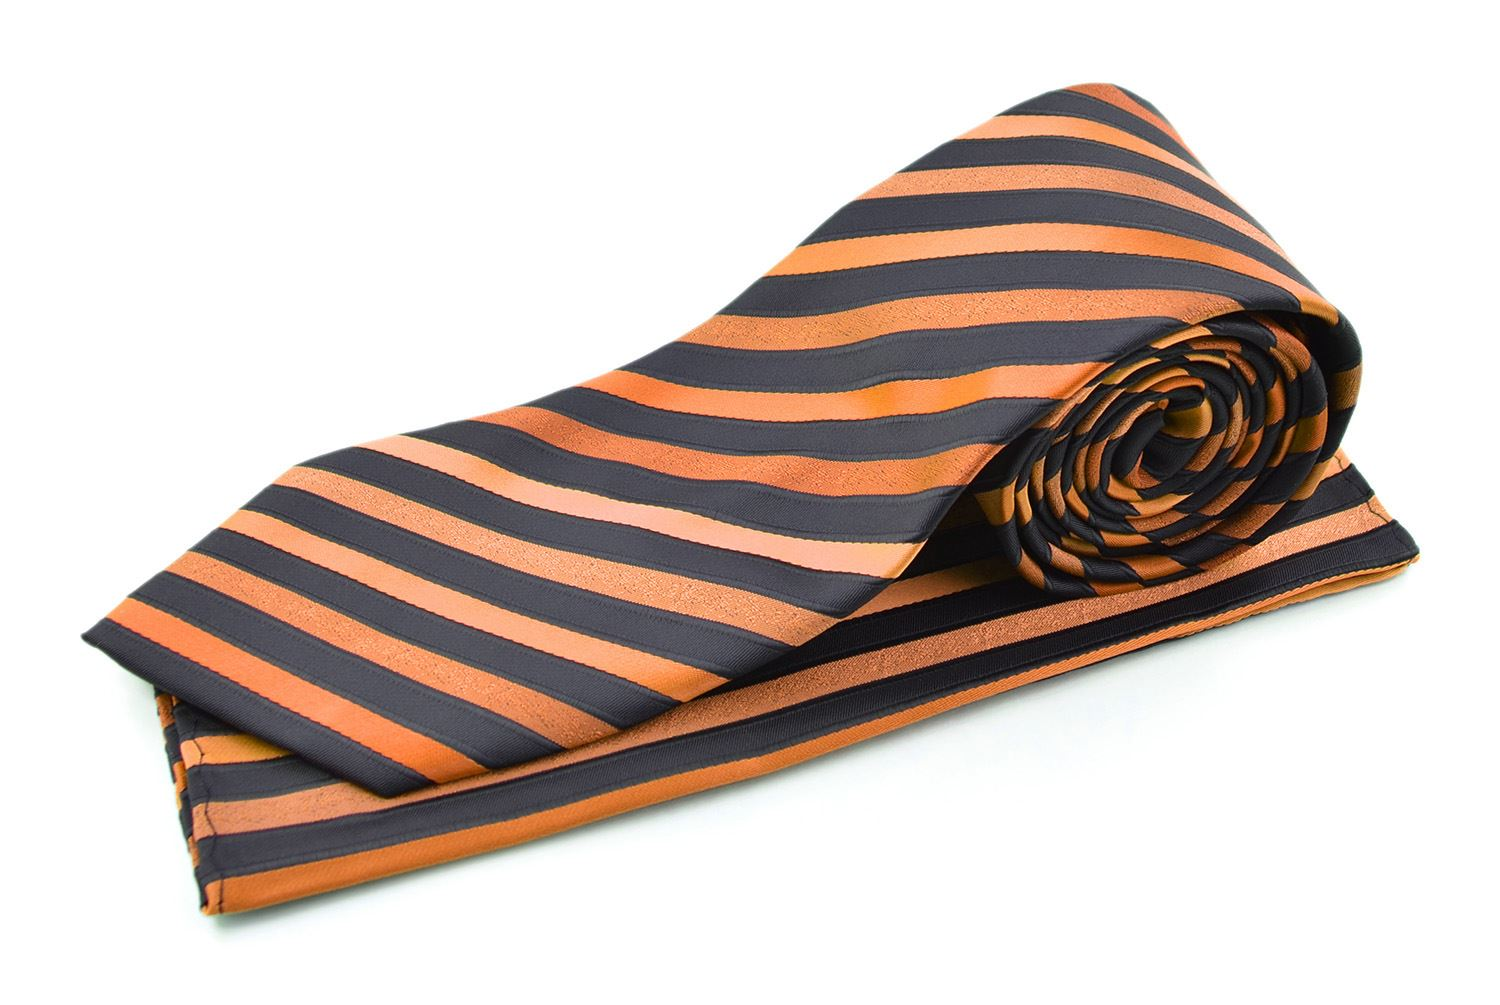 Moda Di Raza Men's Subtle Striped Trendy Modern Imported Silky Fashion Neckties - Orange